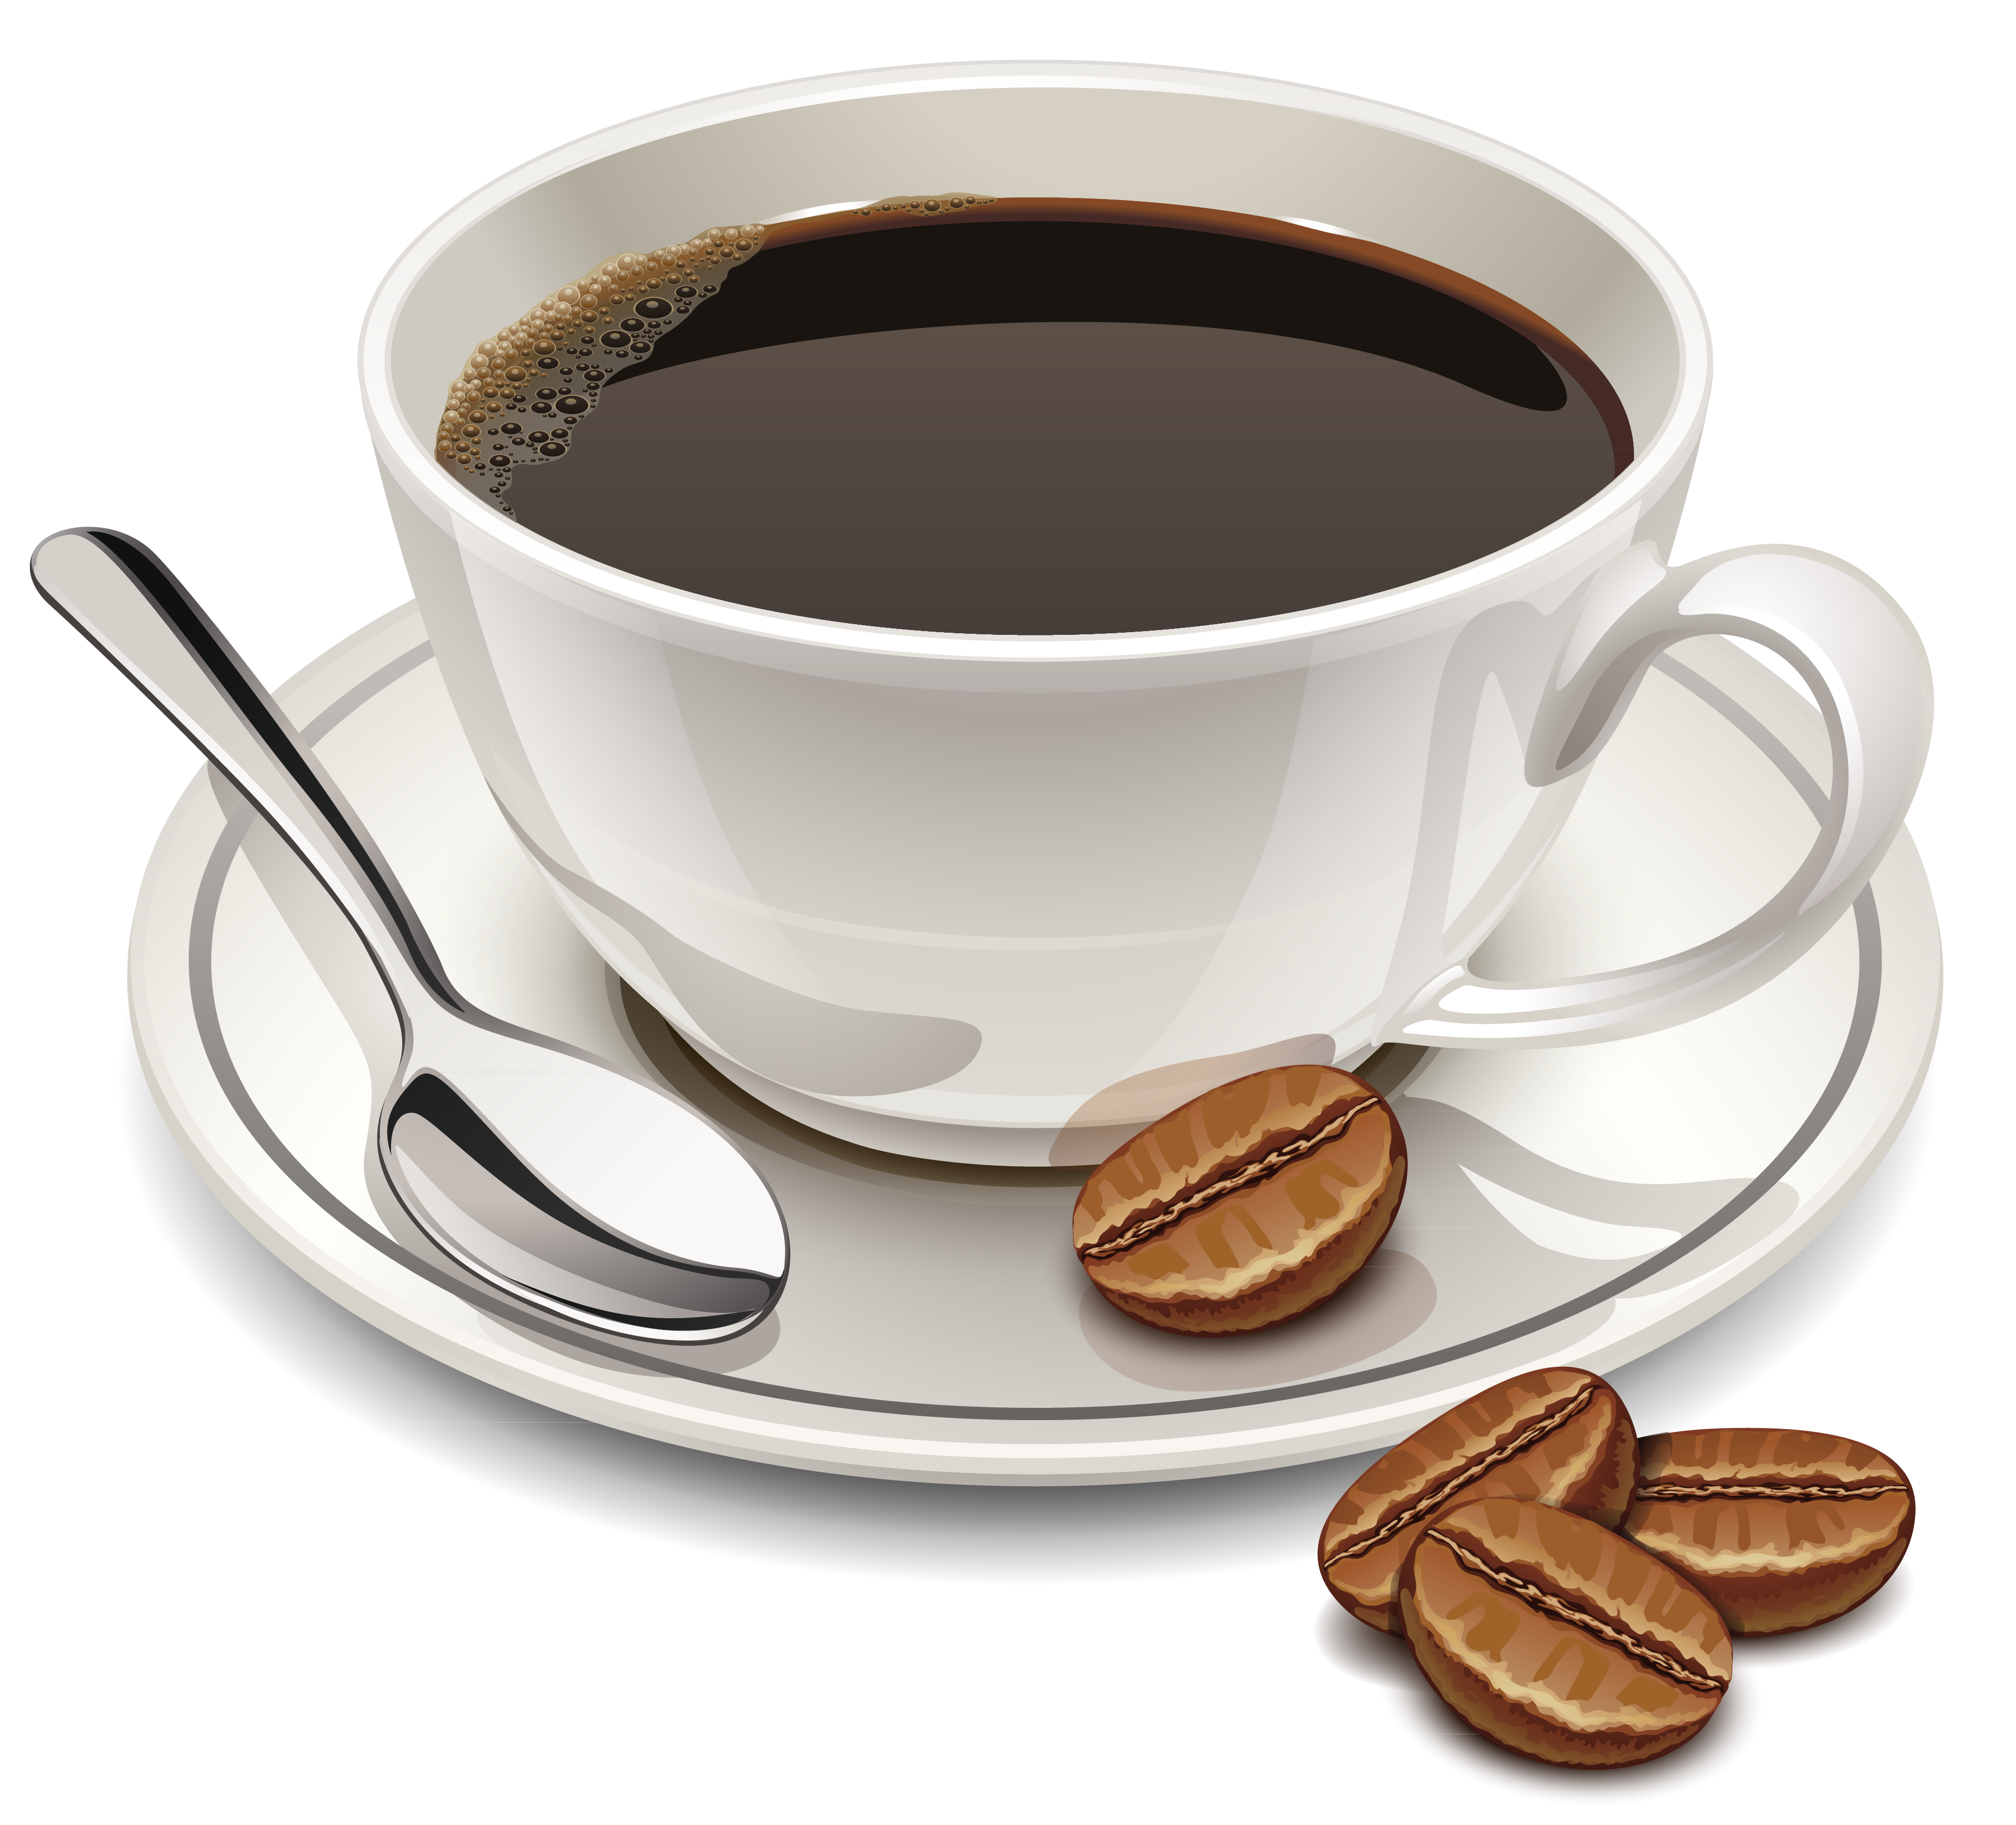 Coffee Morning PNG HD Transparent Coffee Morning HD.PNG Images.